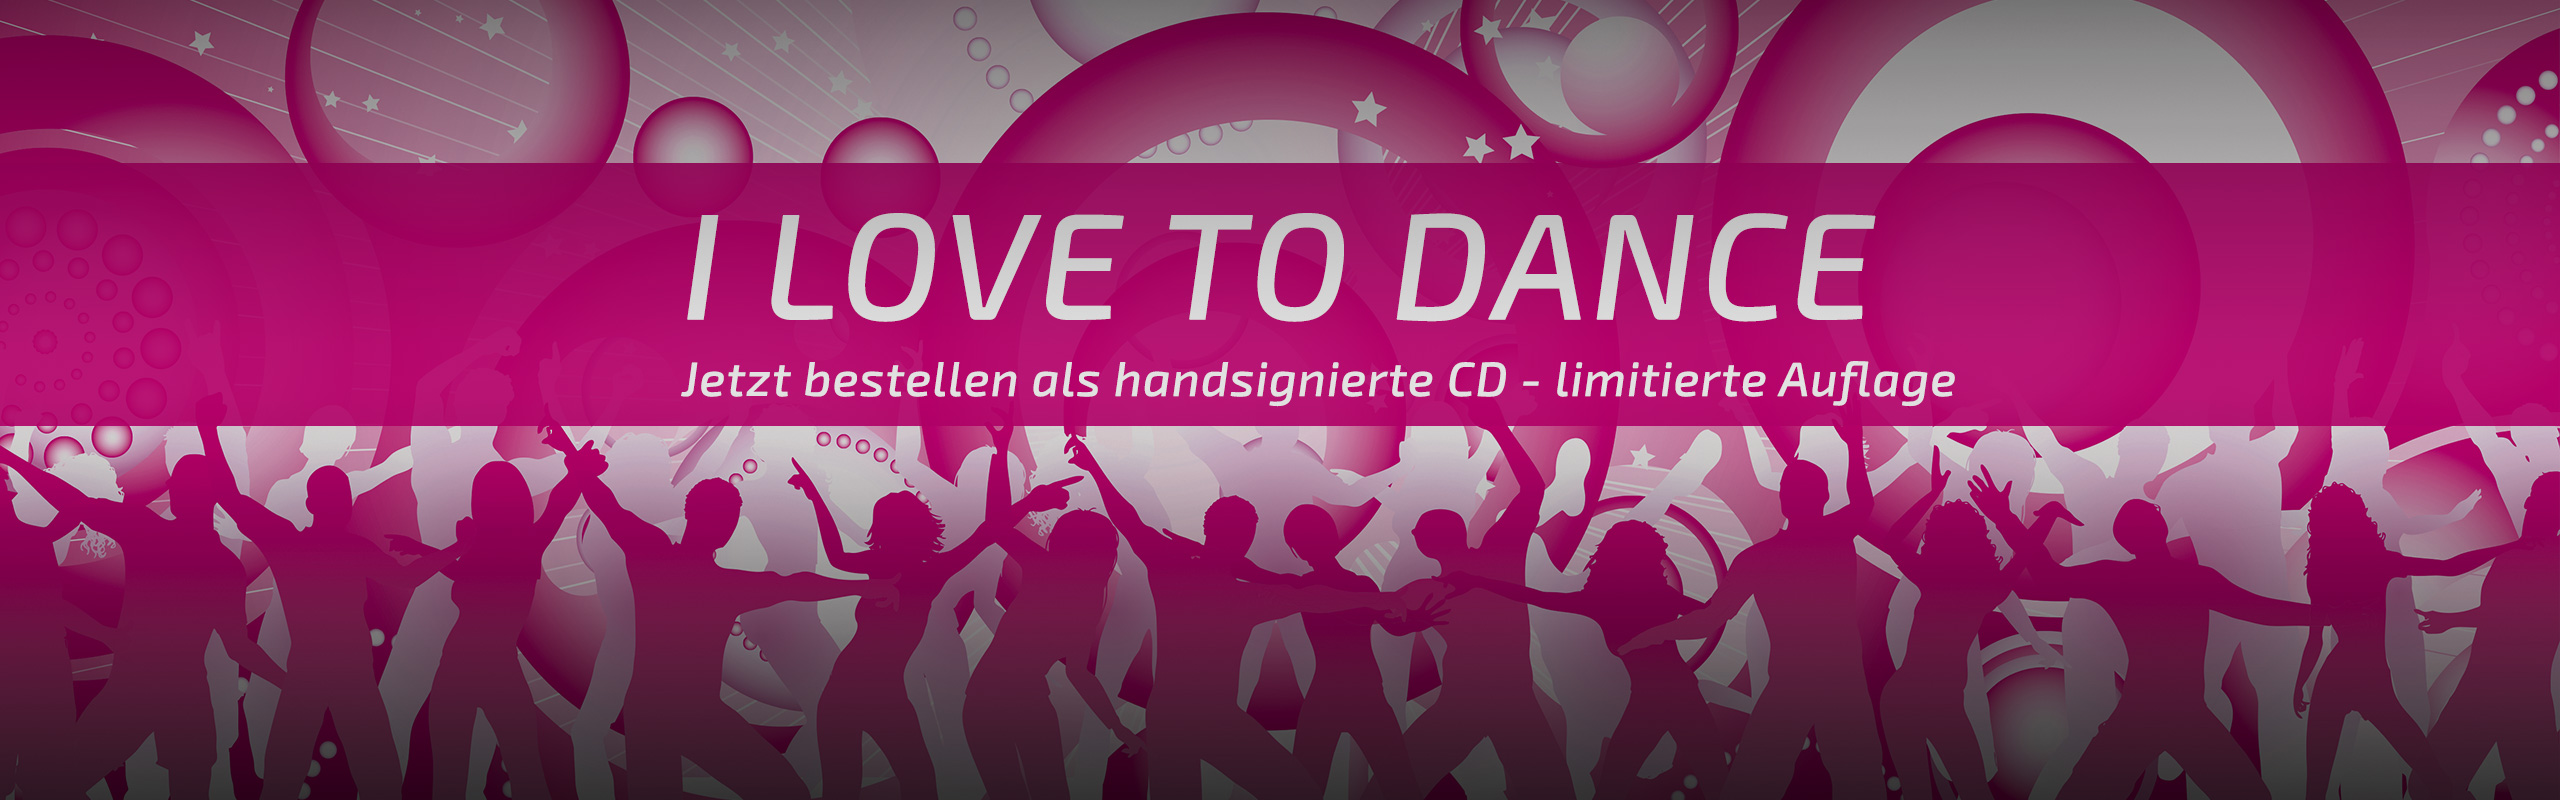 I_love_to_dance_Jana_und_sophia_muenster